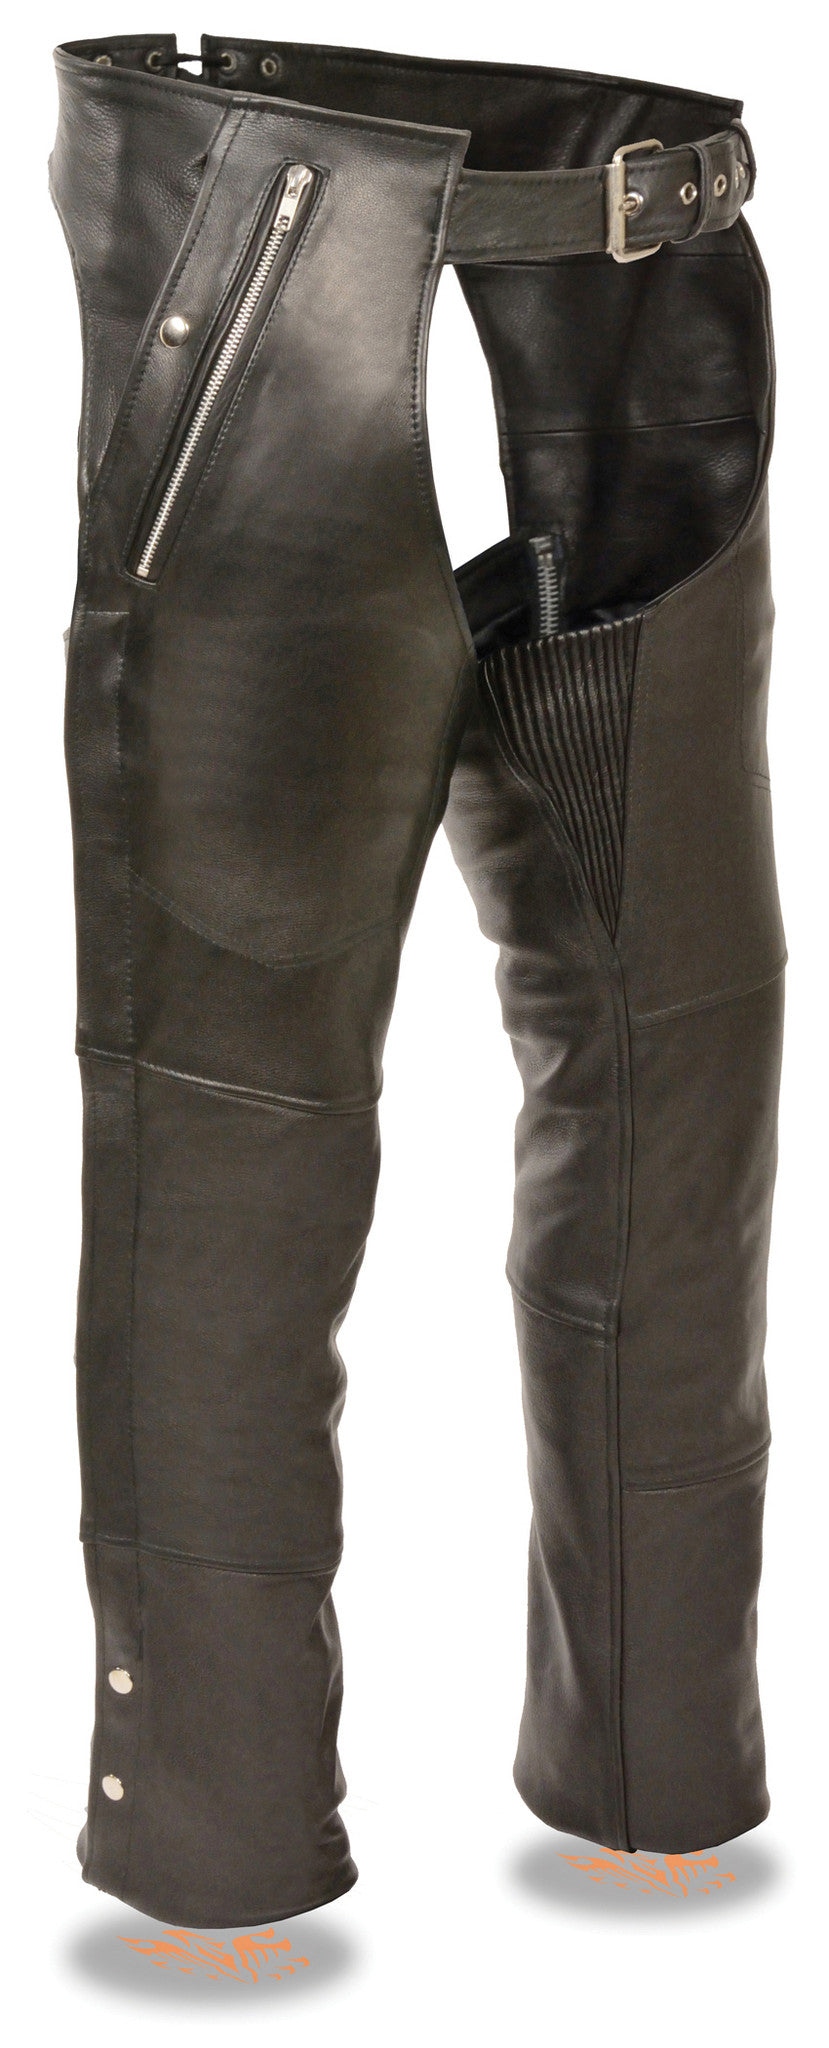 53fd5053dee4 MEN S MOTORCYCLE BLACK LEATHER RIDING CHAP PANTS